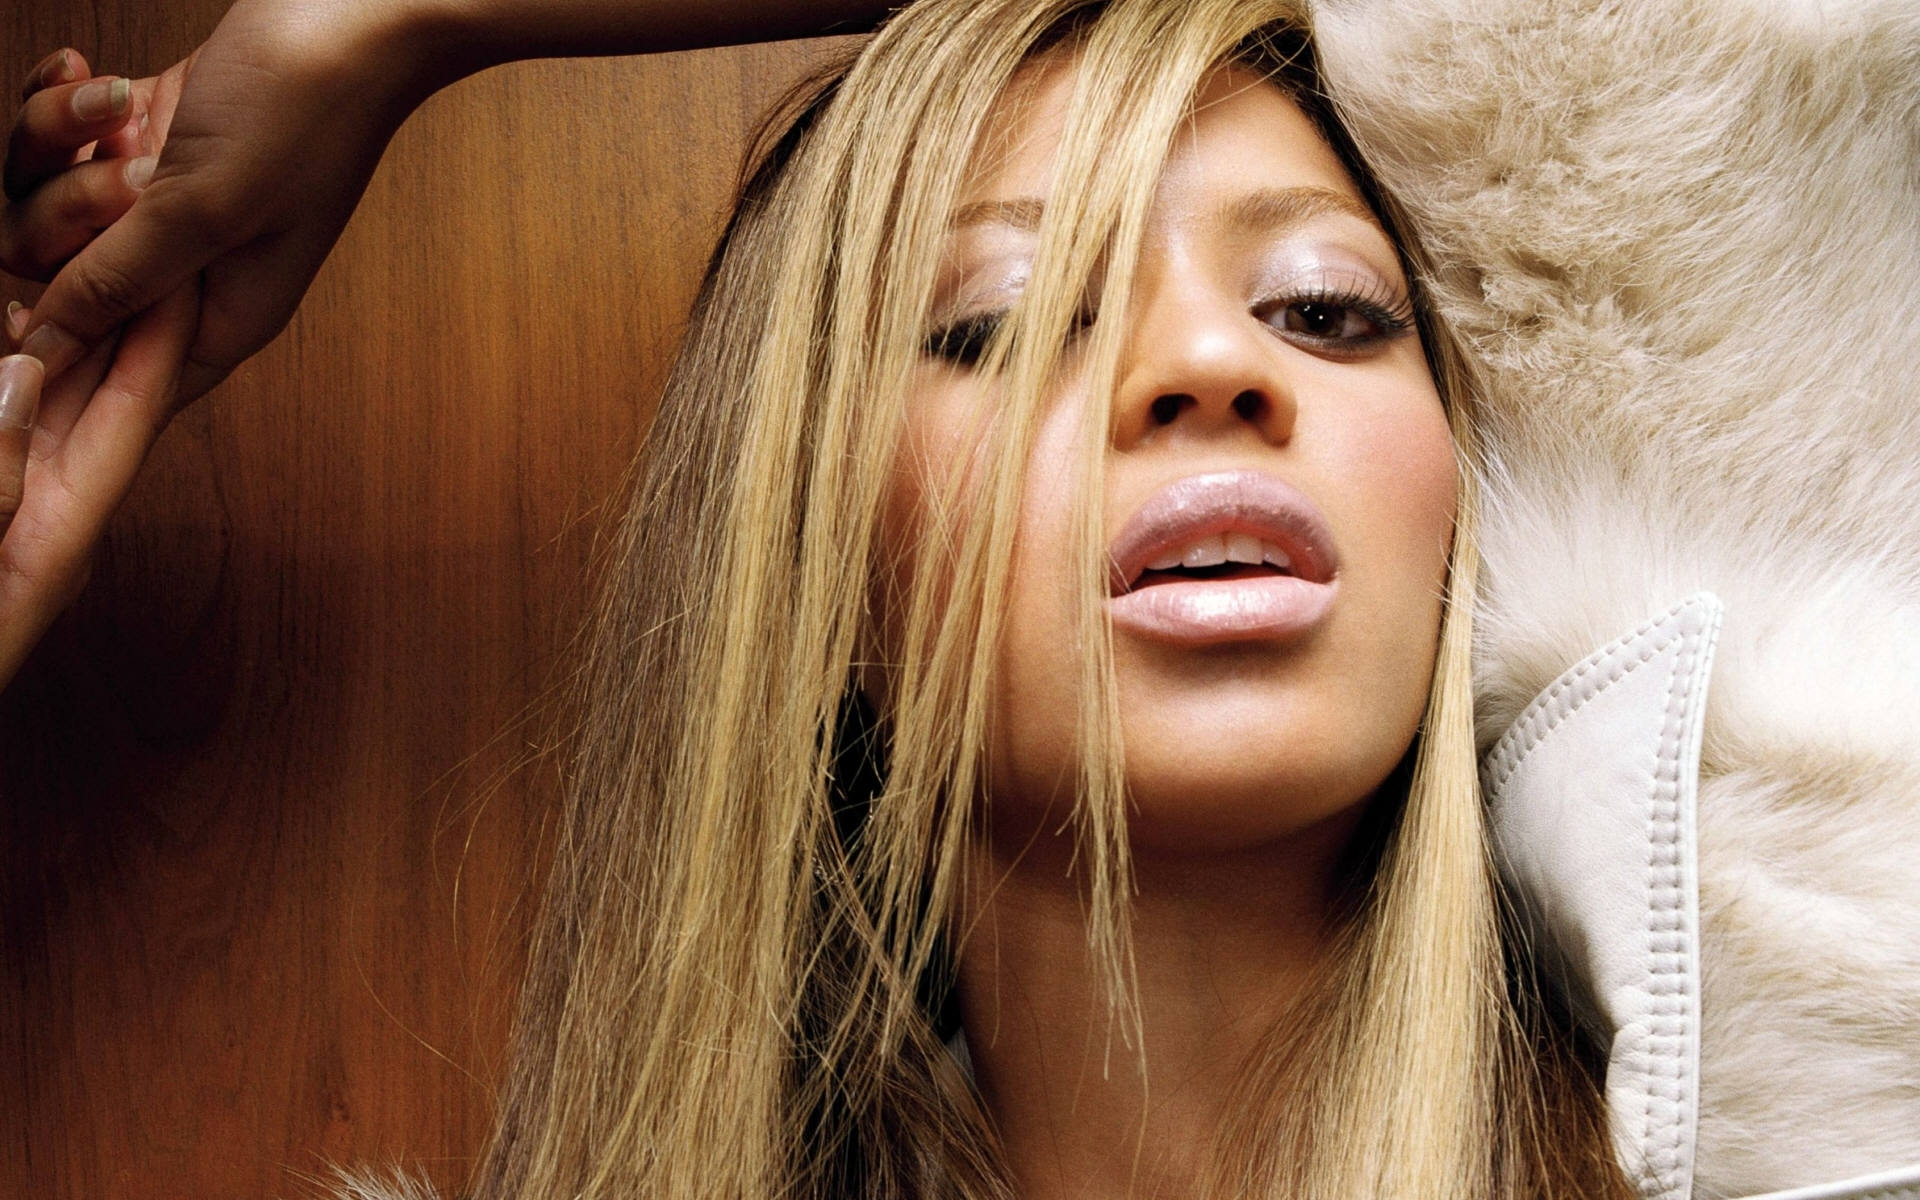 Download Wallpaper 1920x1200 Beyonce Girl Singer Blonde 1920x1200